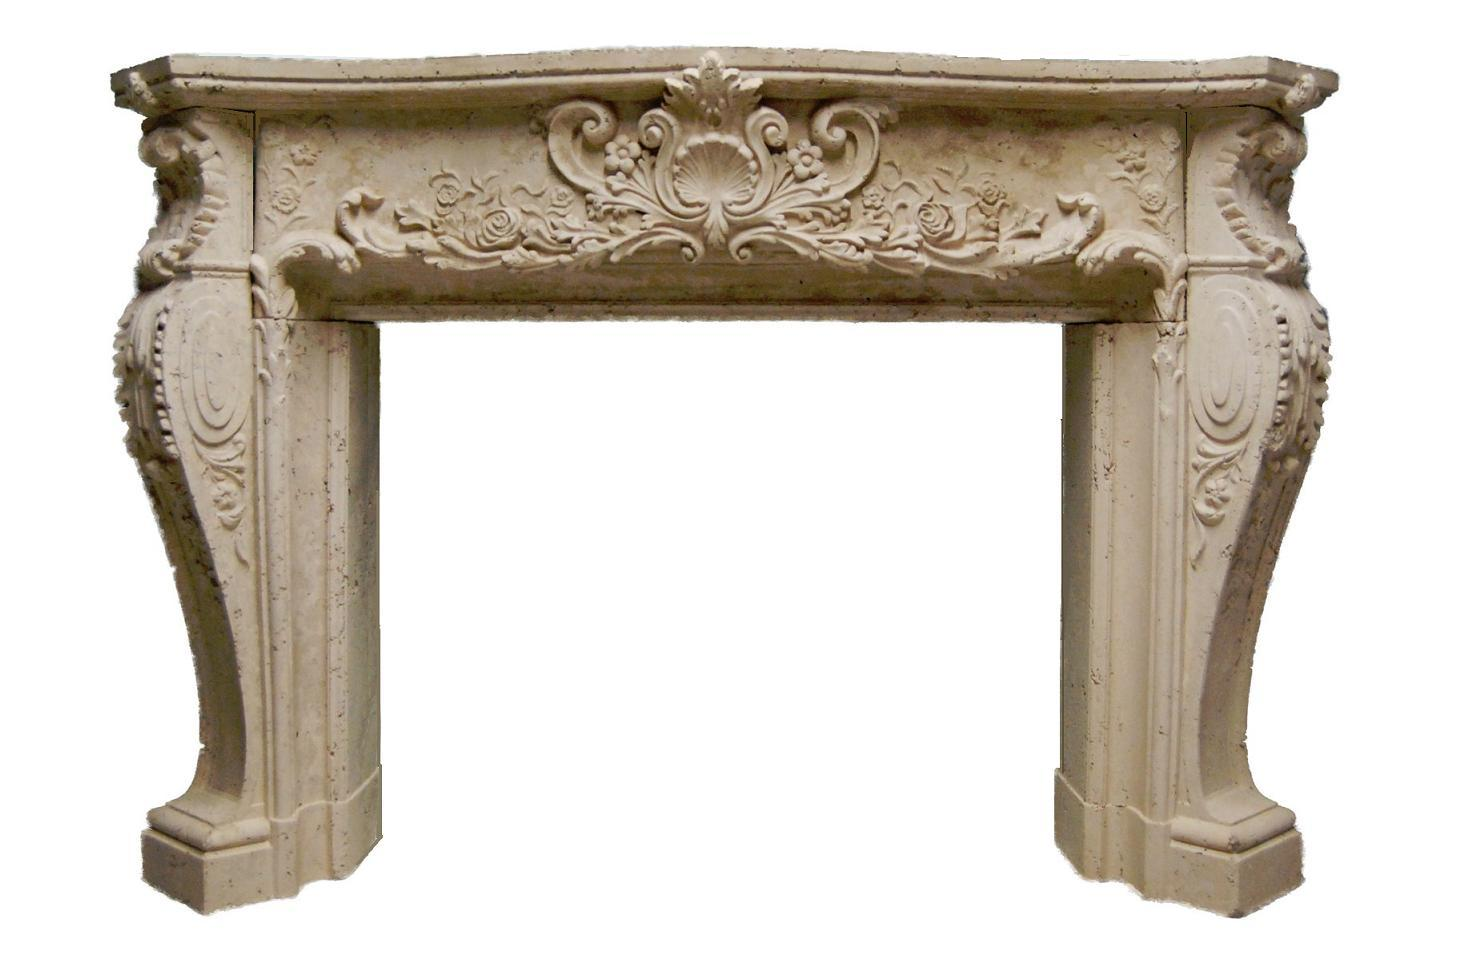 Ornate Travertine Look Fireplace Mantel | Louis | Frence